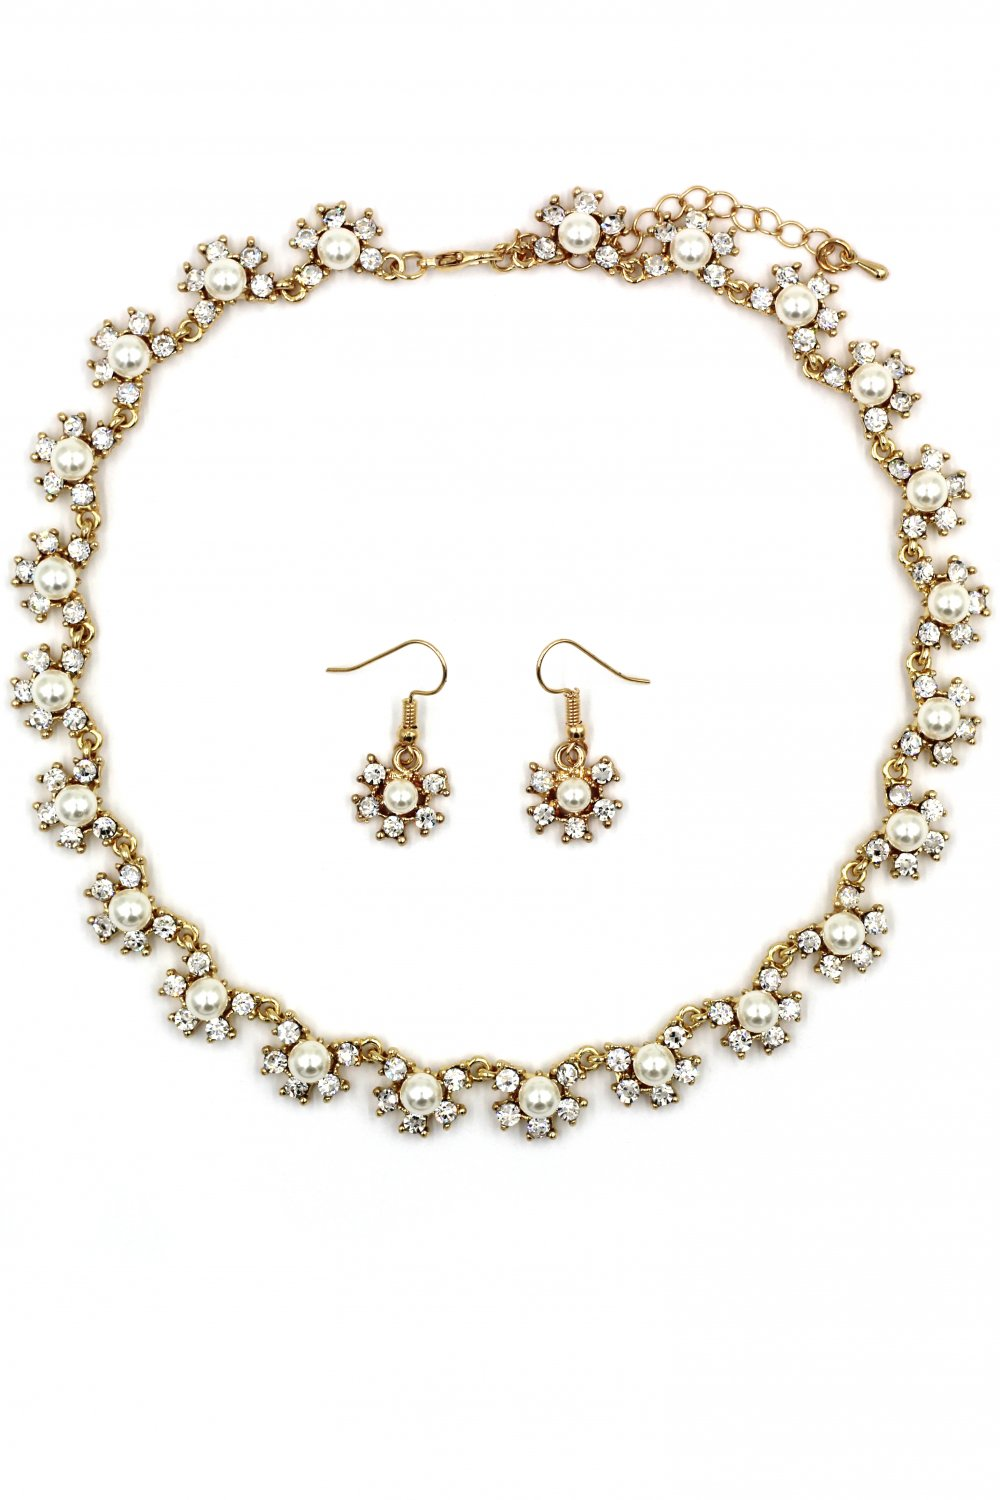 Classic crystal and pearl necklace earrings gold set